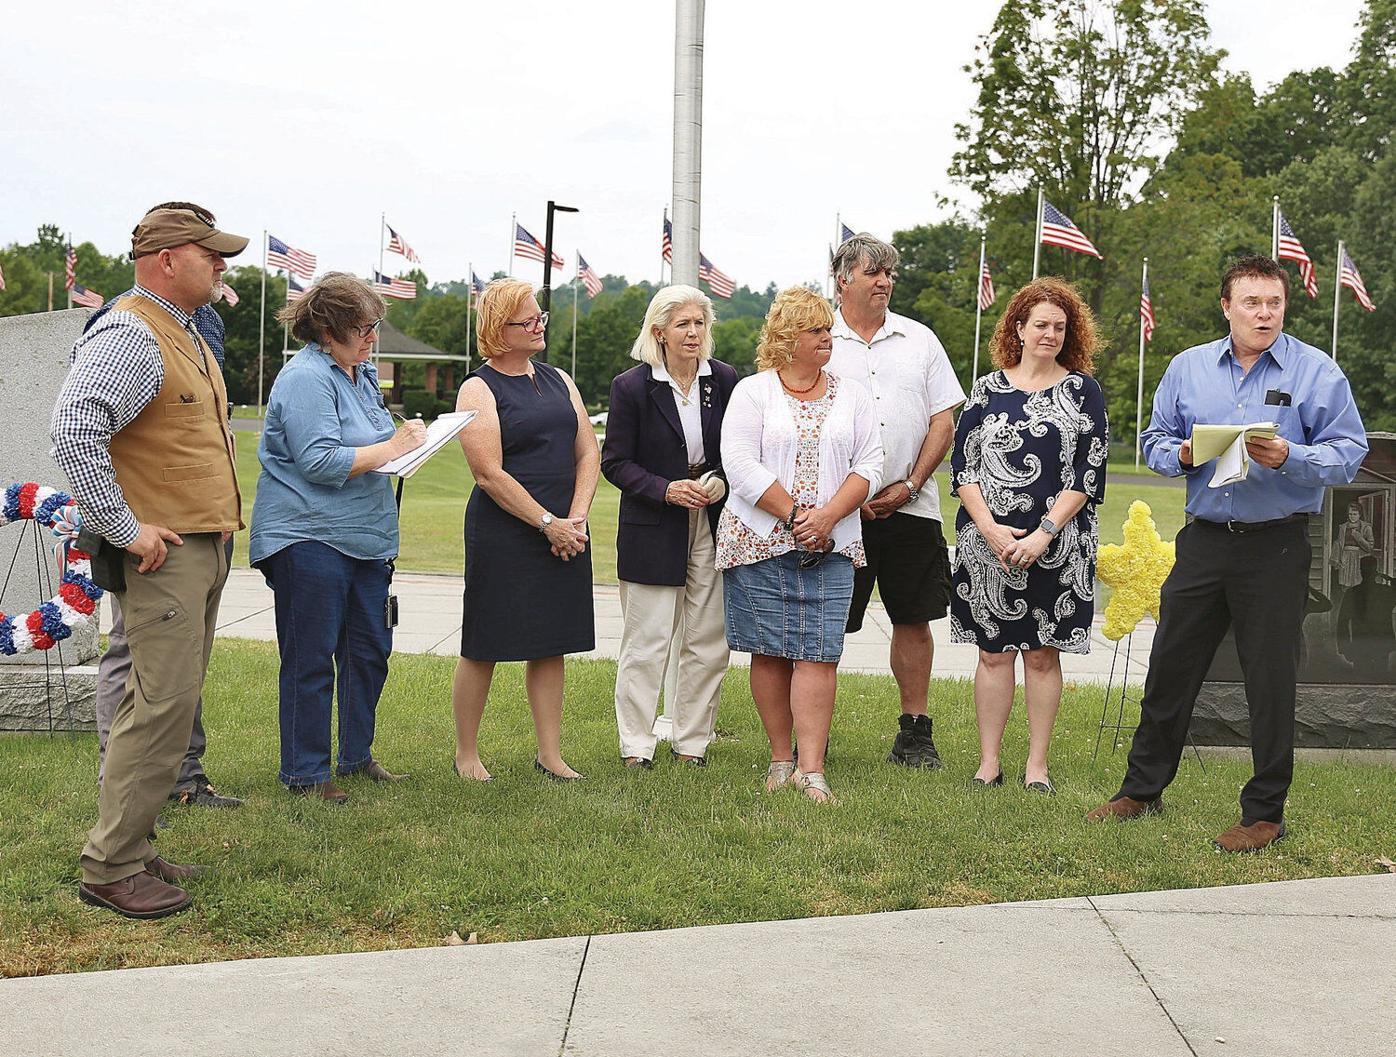 Programs aim to bring more visitors to veterans